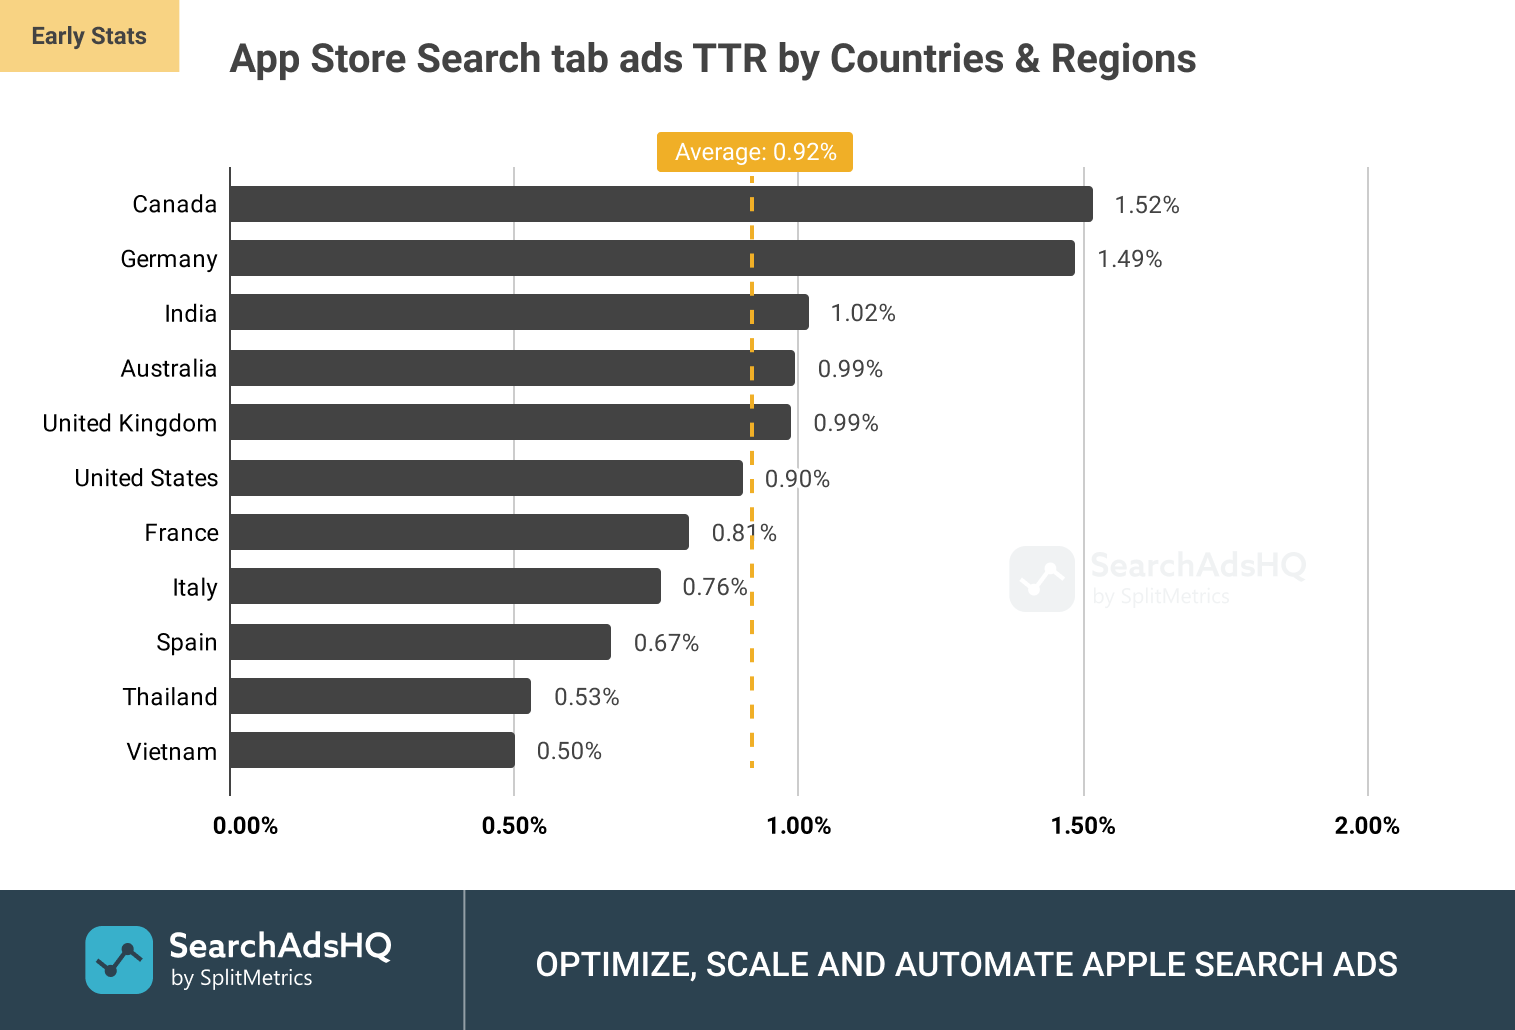 App Store Search tab ads: Average TTR (Tap-Through Rate) by Countries and Regions